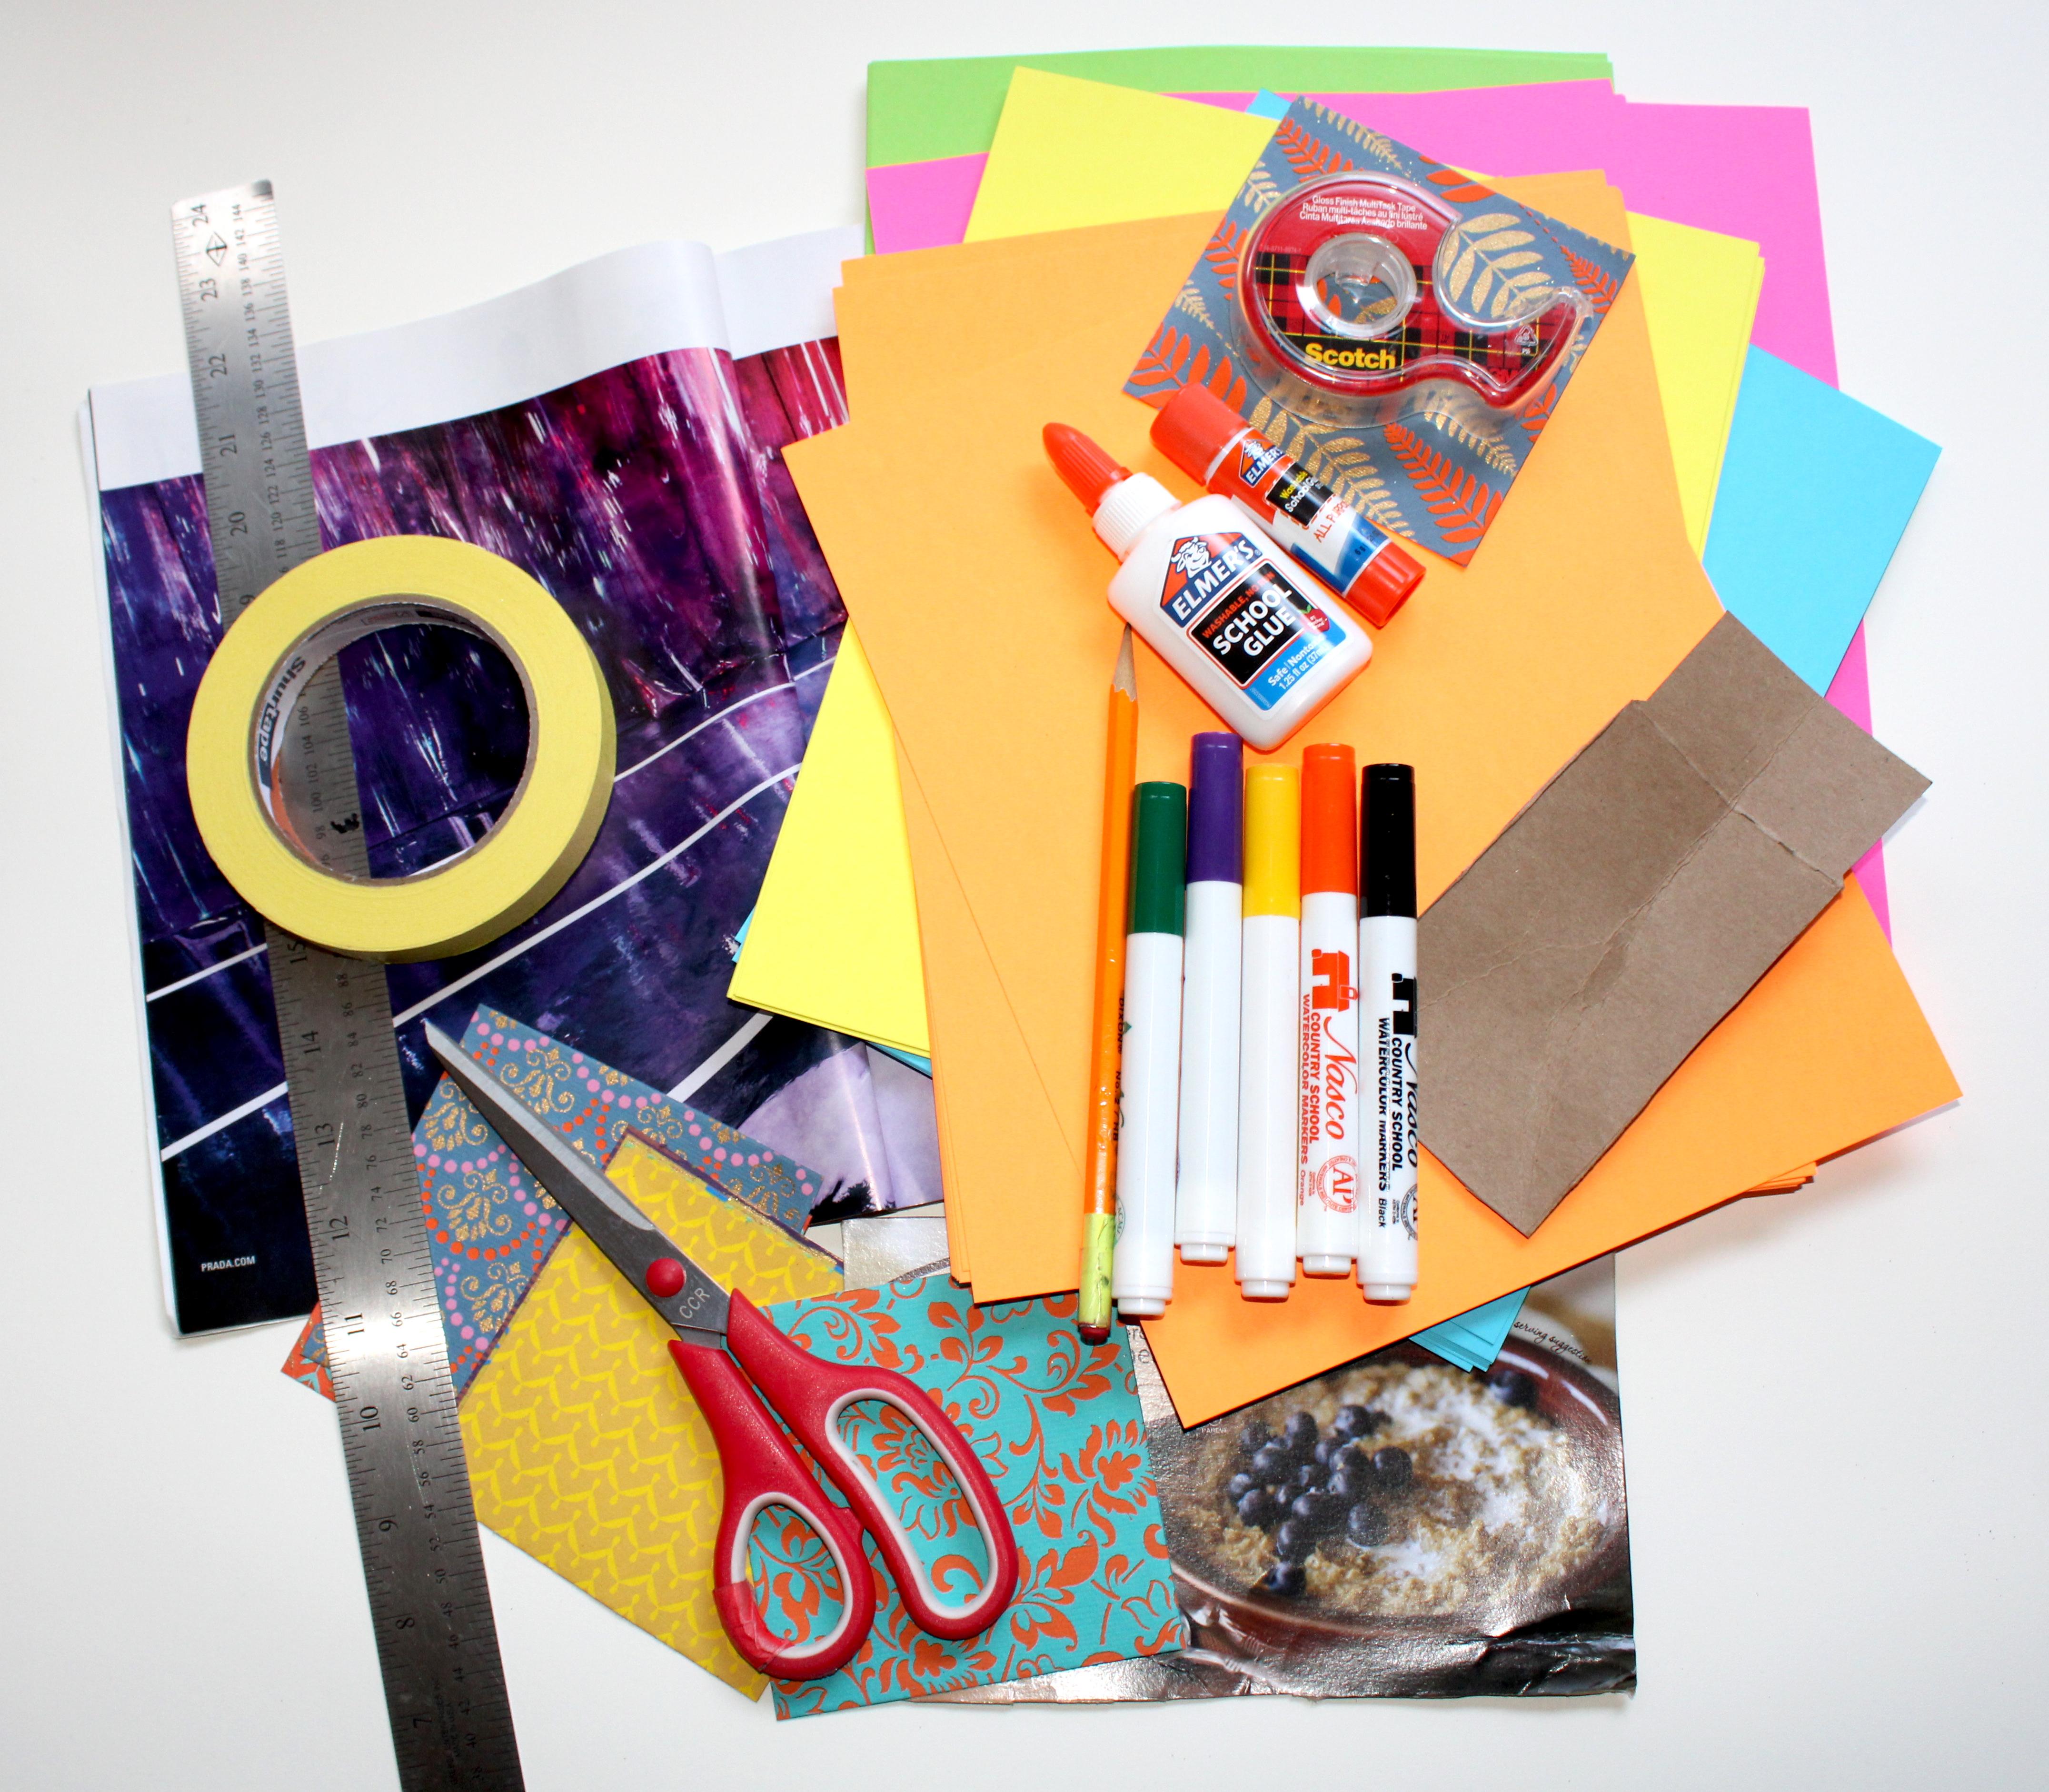 Invite your art mate to help you scavenge around the house to collect cool papers to work with!